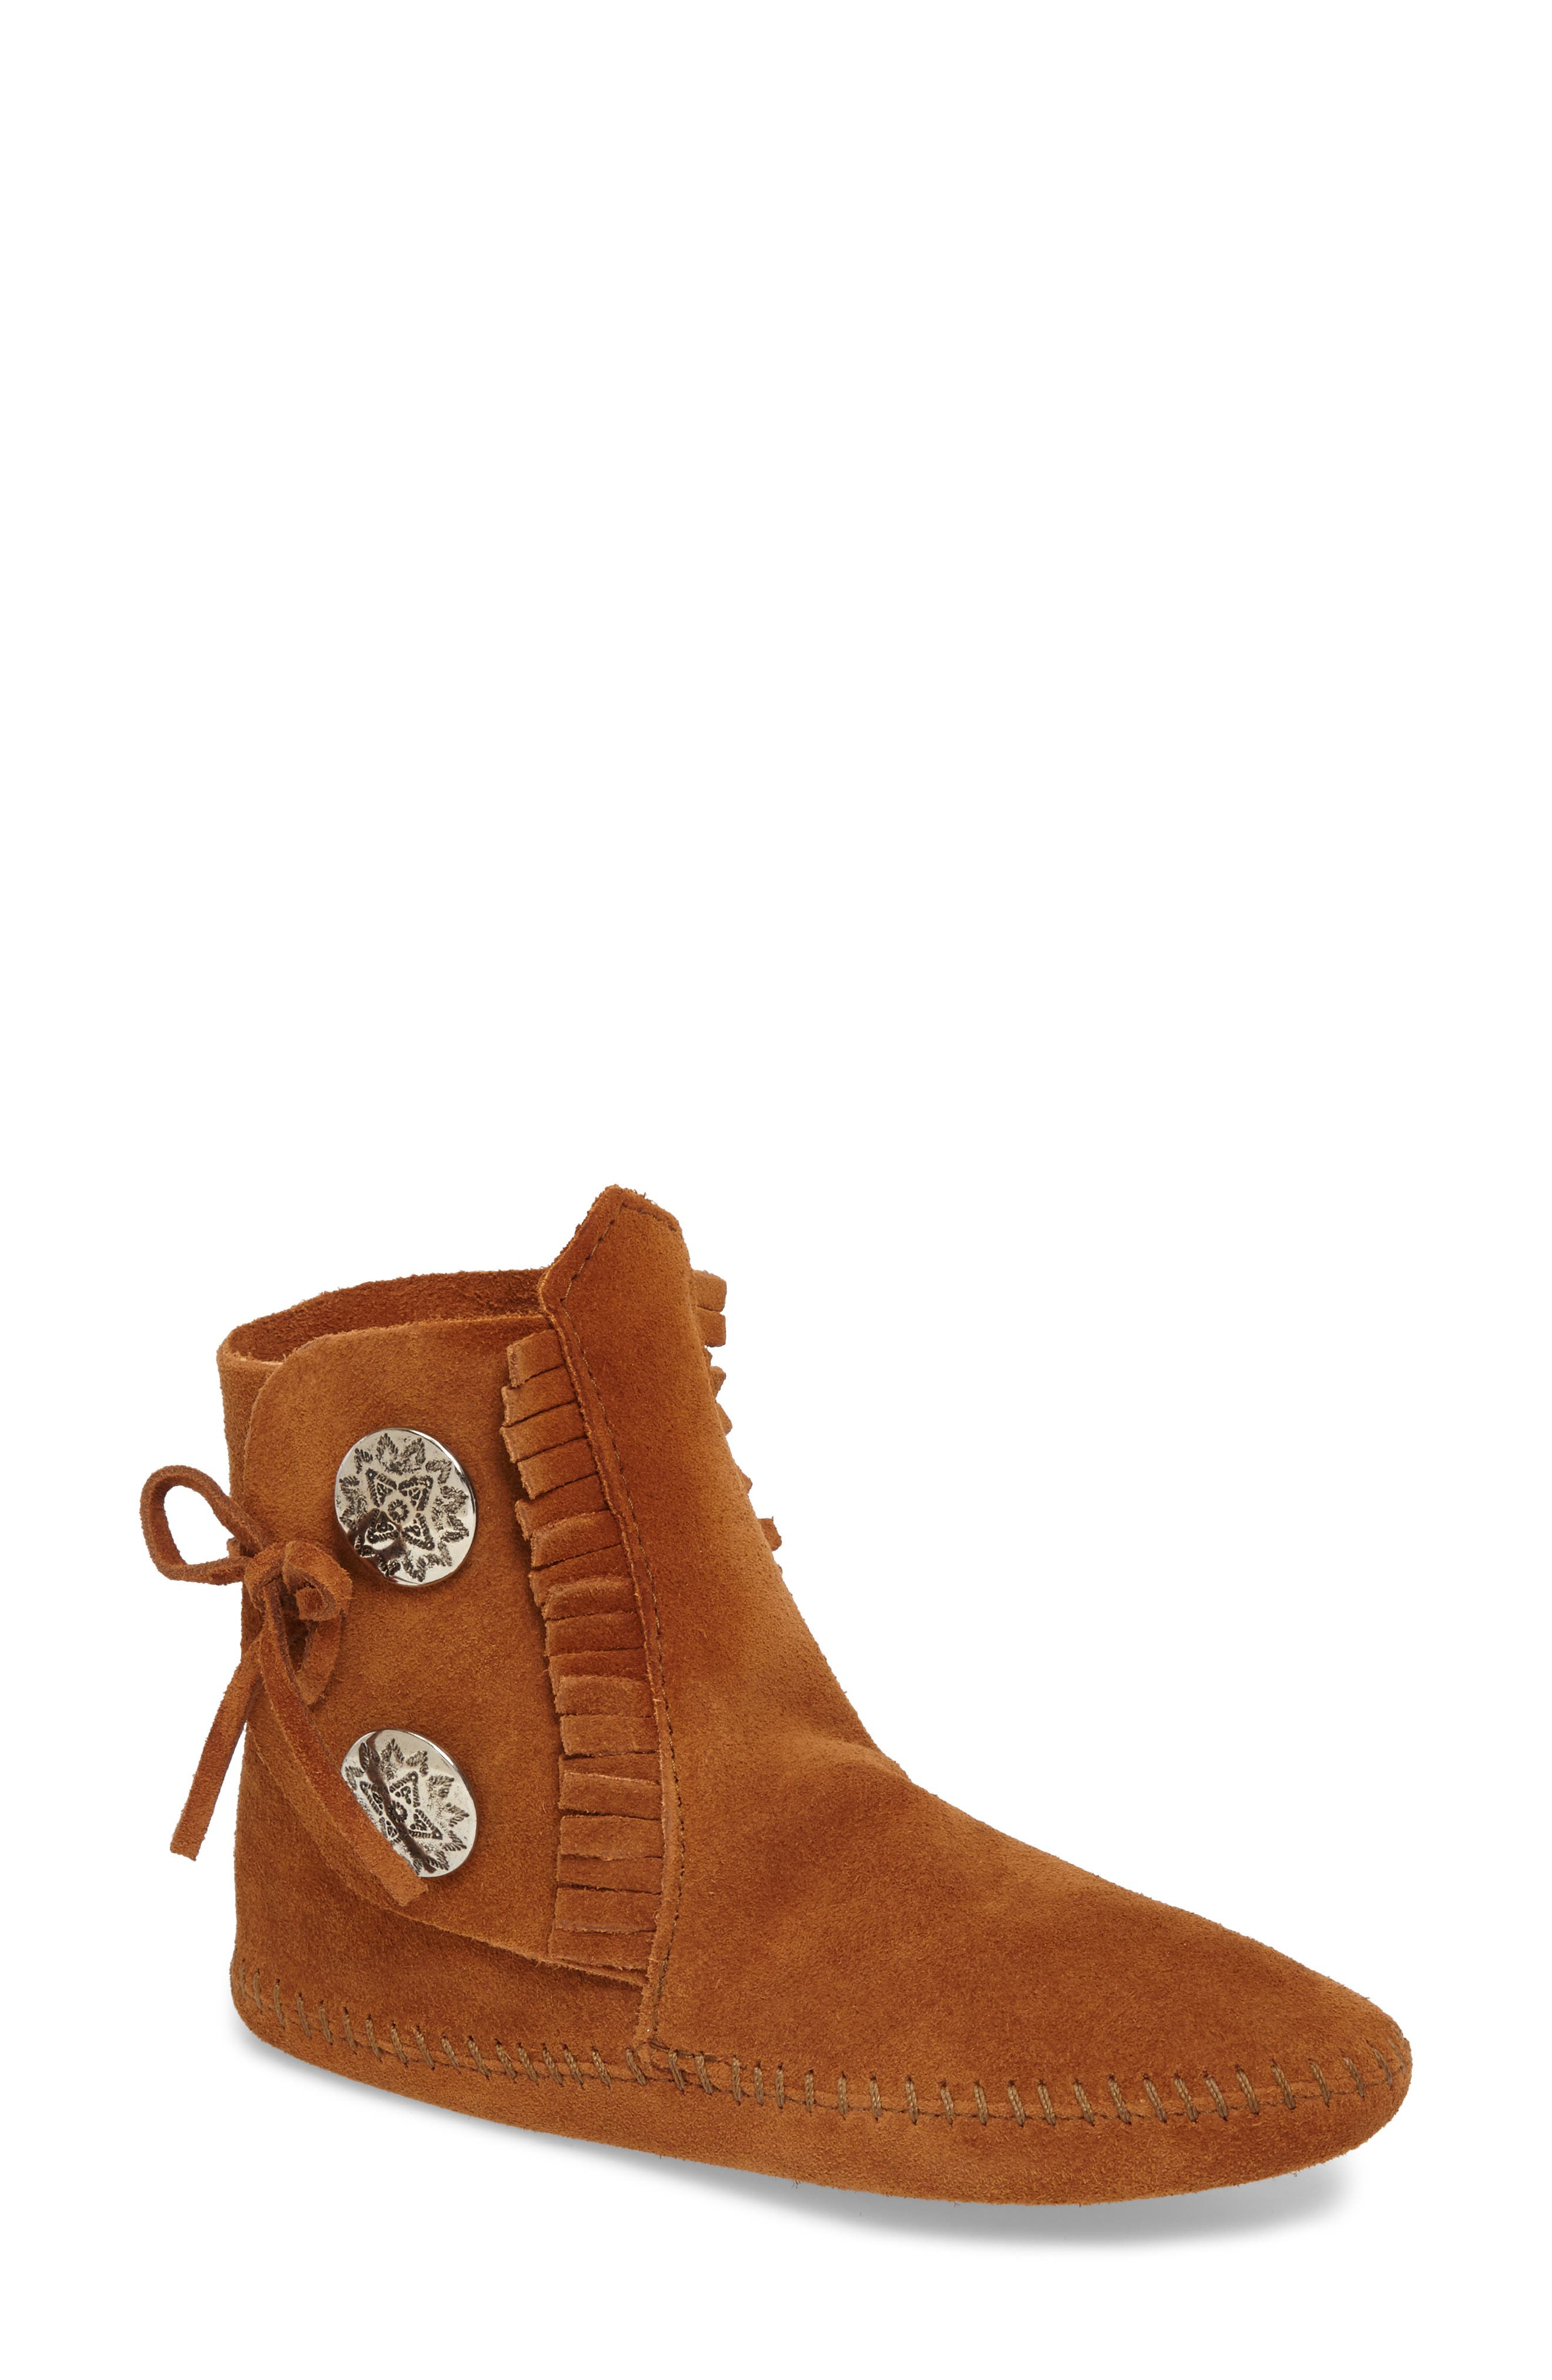 Two-Button Softsole Bootie,                         Main,                         color, 211